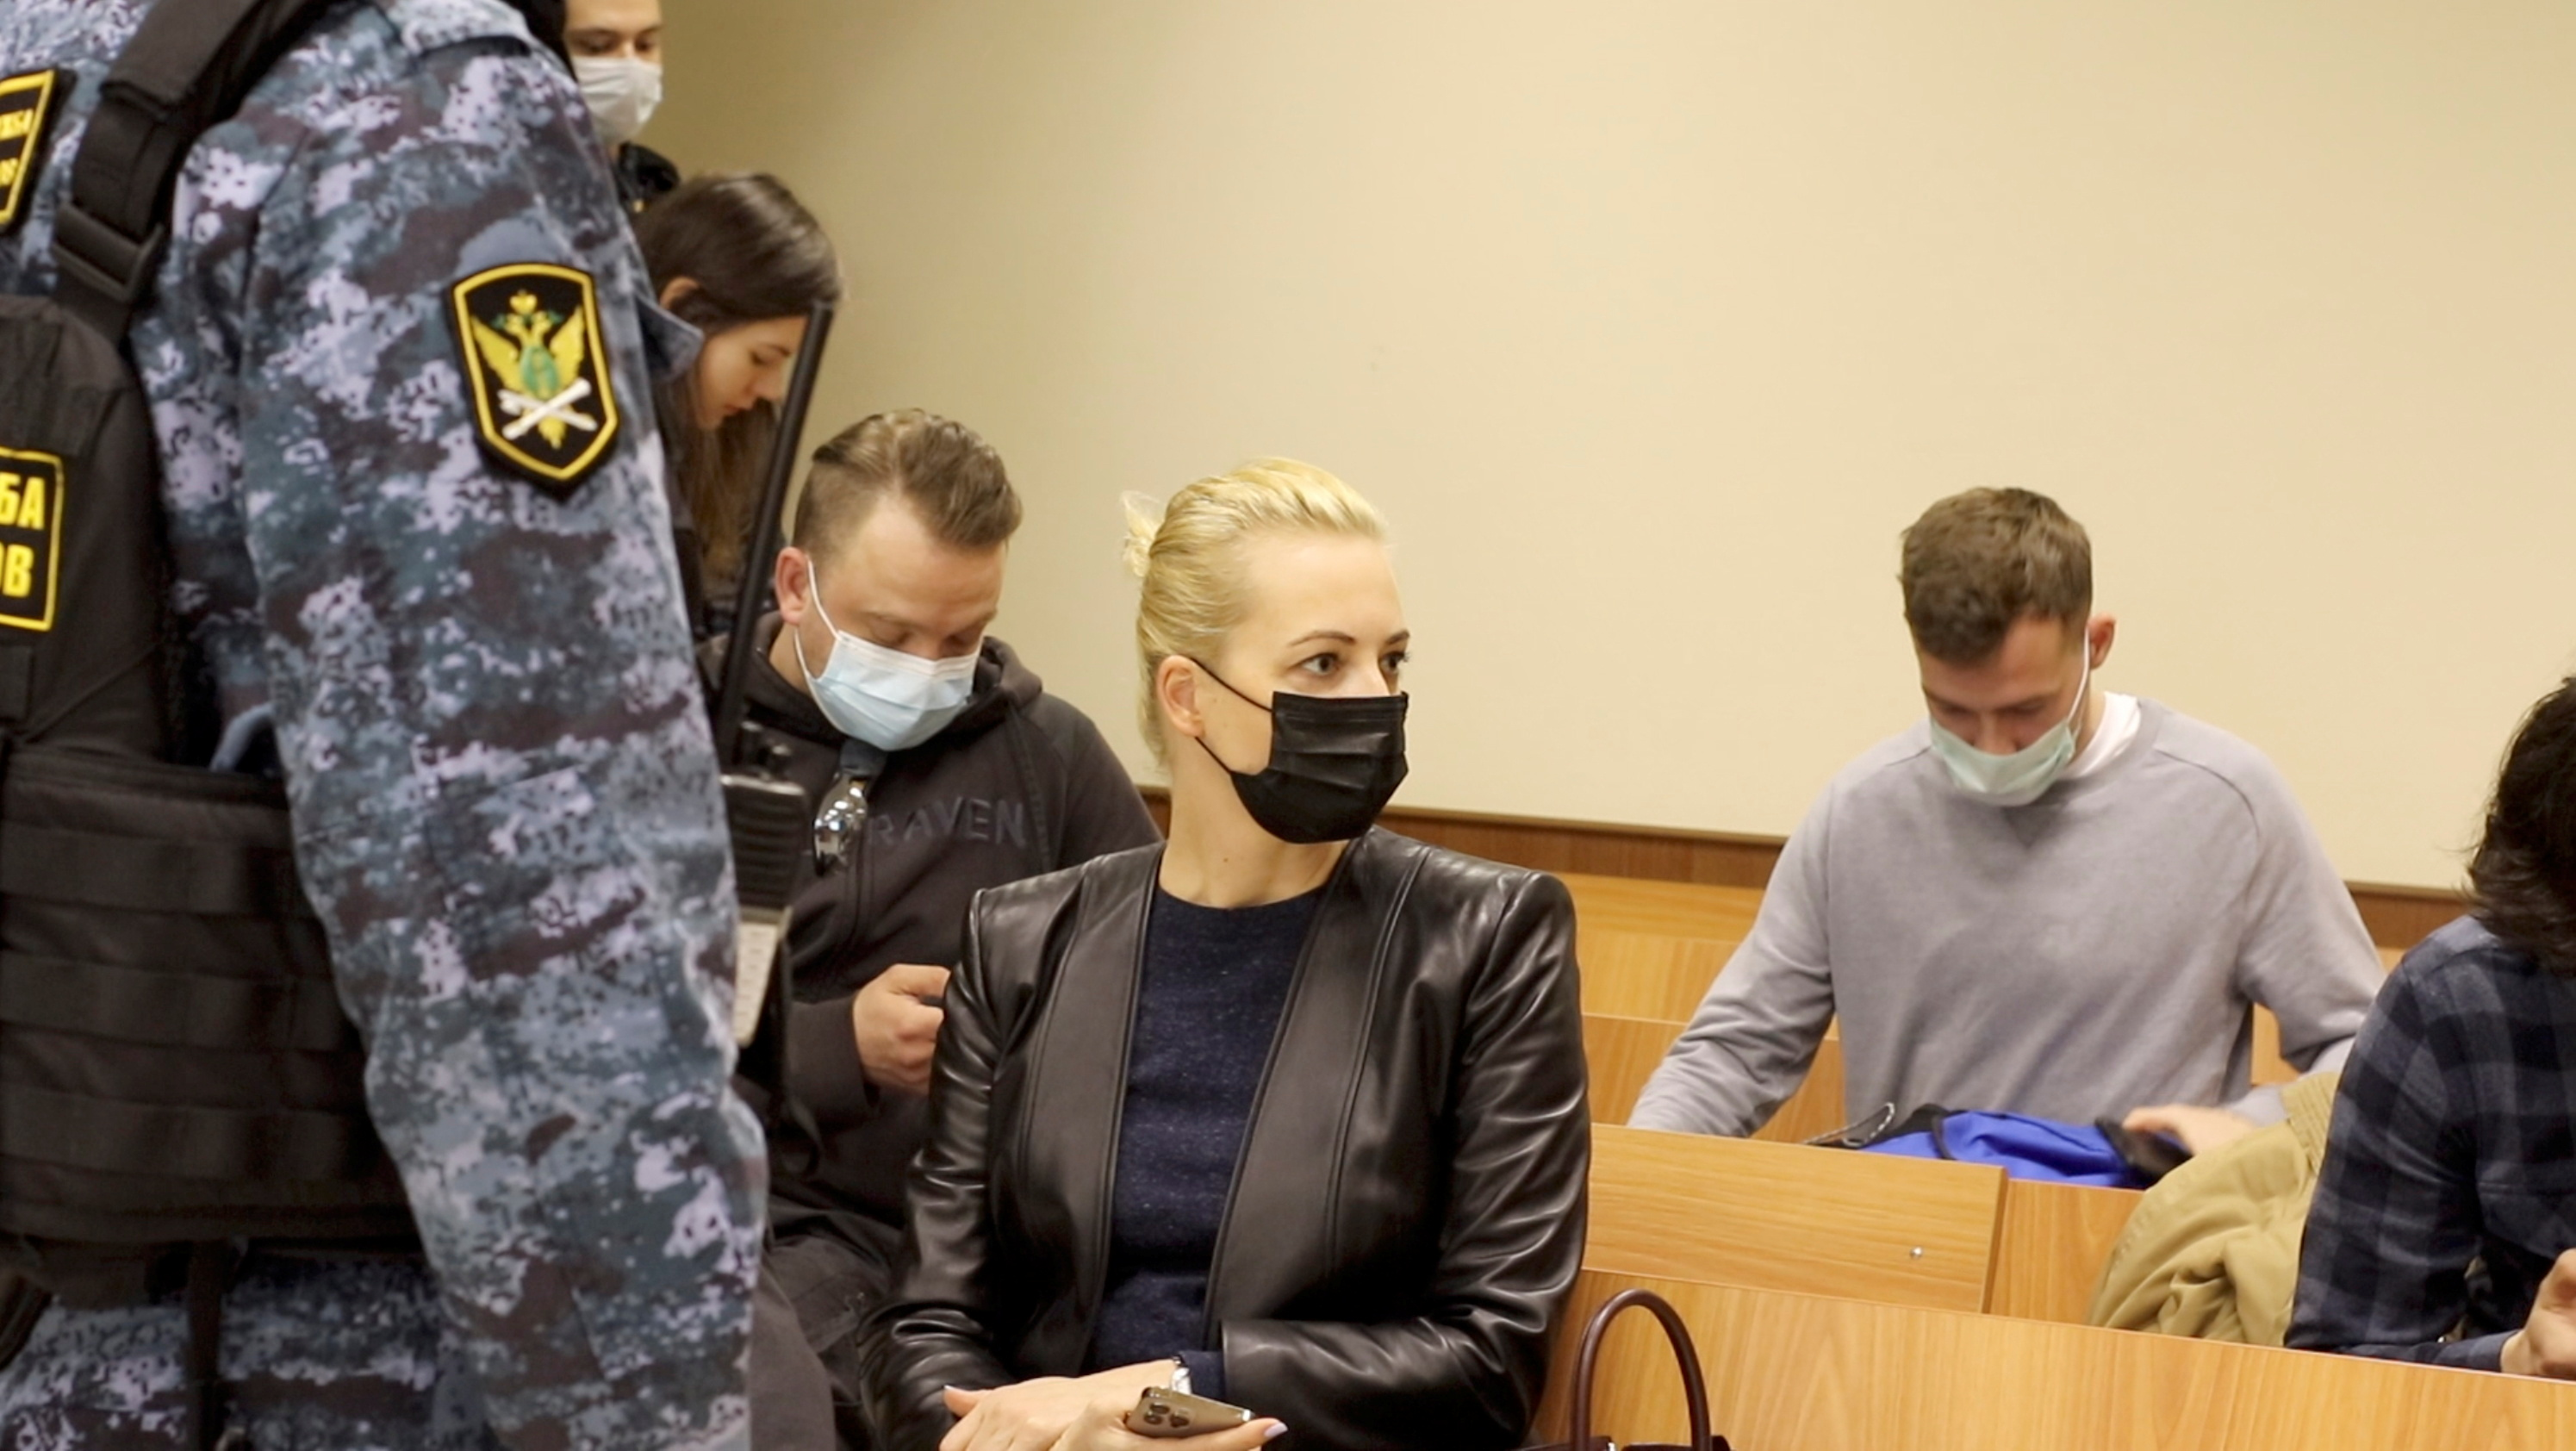 Yulia Navalnaya, wife of Russian opposition leader Alexei Navalny, is seen in a courtroom before a hearing to consider an appeal against an earlier court decision that found Navalny guilty of slandering a Russian World War Two veteran, in Moscow, Russia April 29, 2021, in this still image taken from video. Press Service of Babushkinsky District Court of Moscow/Handout via REUTERS